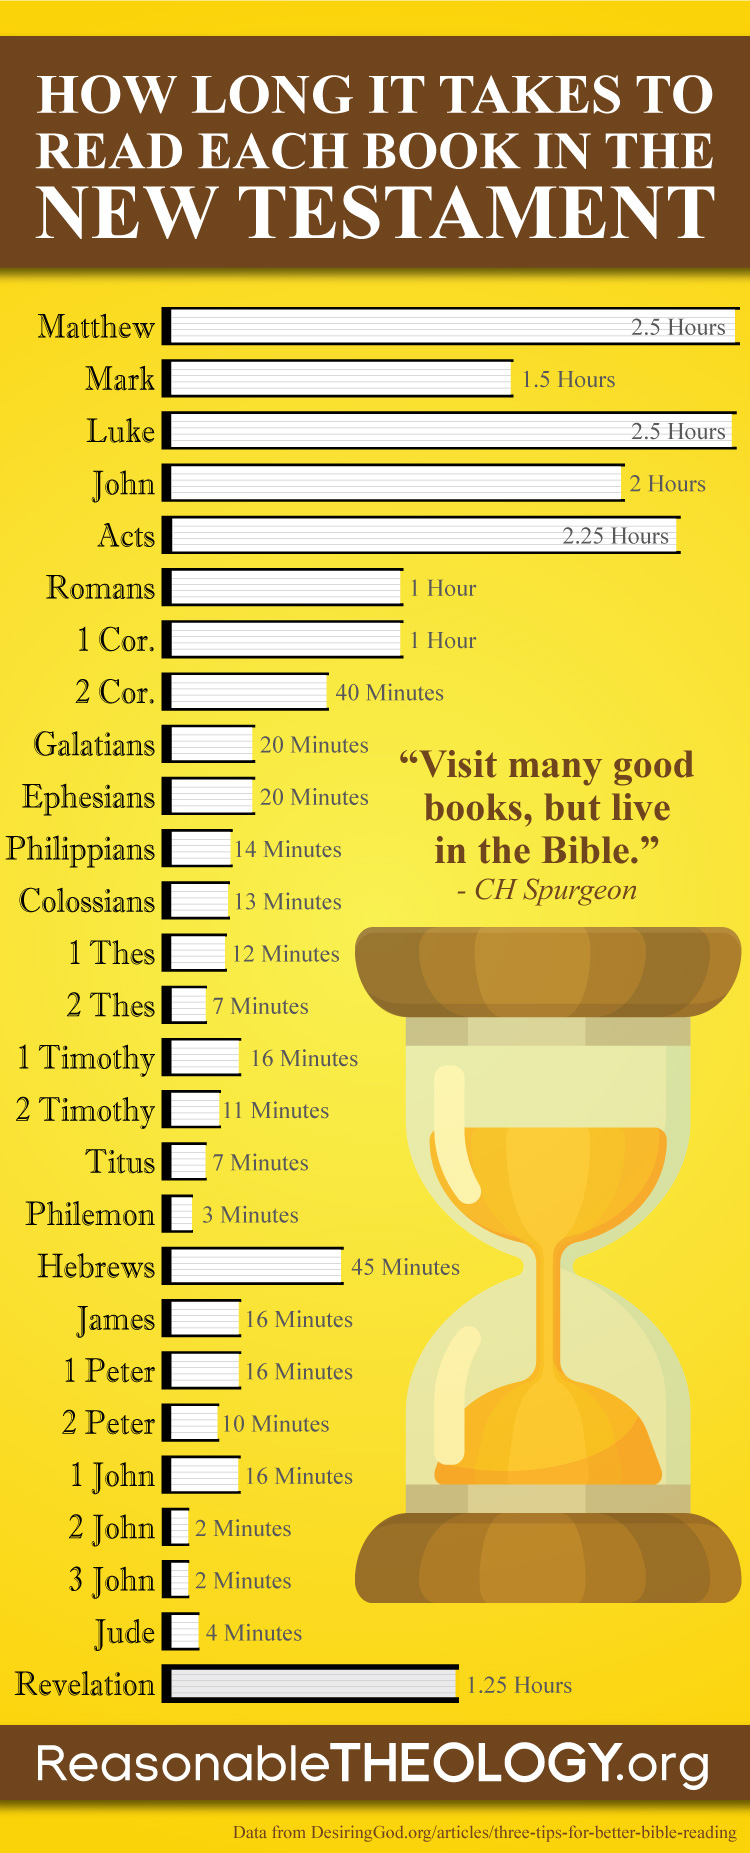 How Long it Takes to Read Each Book in the New Testament